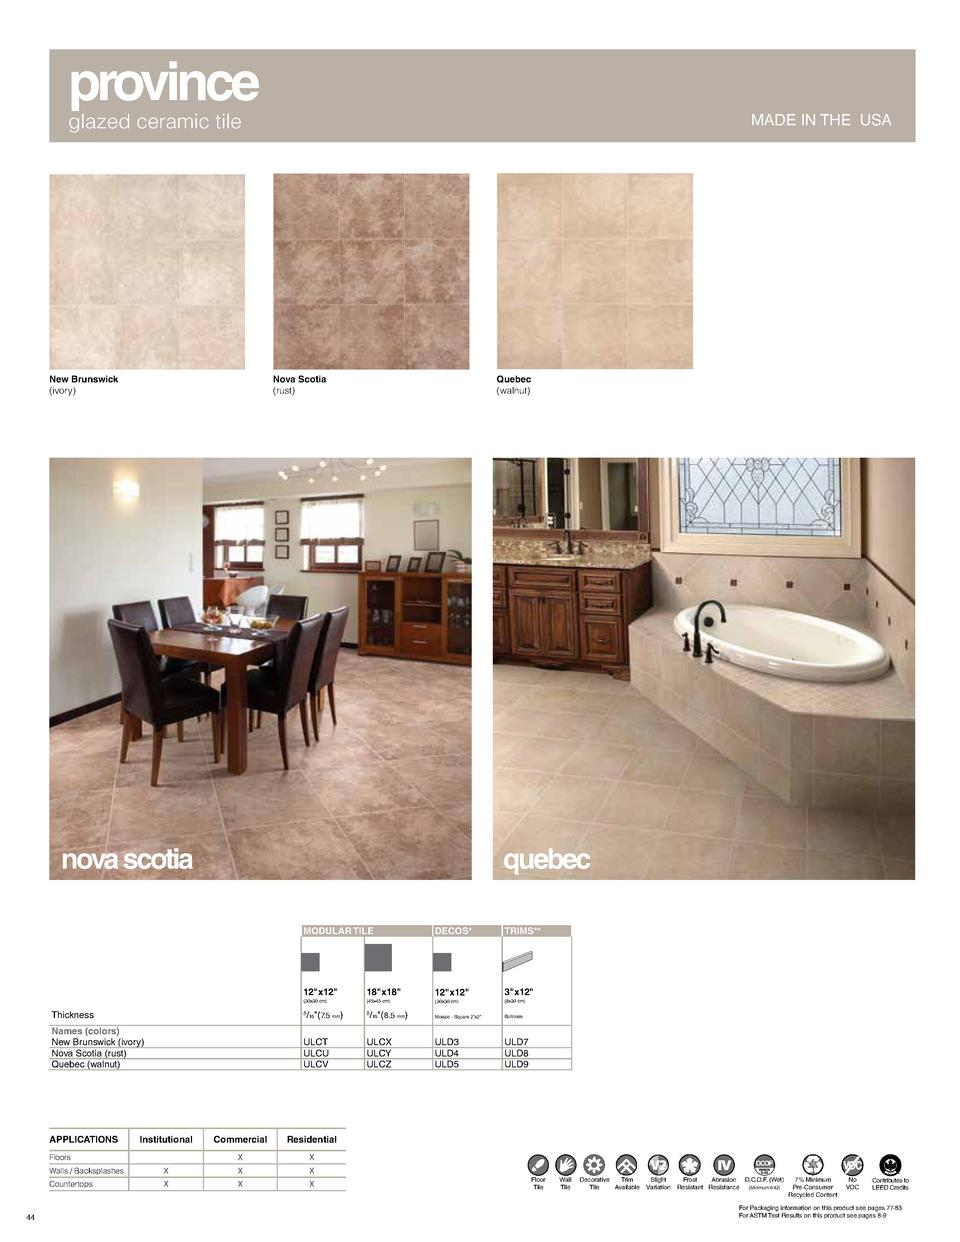 province glazed ceramic tile  New Brunswick  ivory   MADE IN THE USA  Nova Scotia  rust   Quebec  walnut   nova scotia  qu...